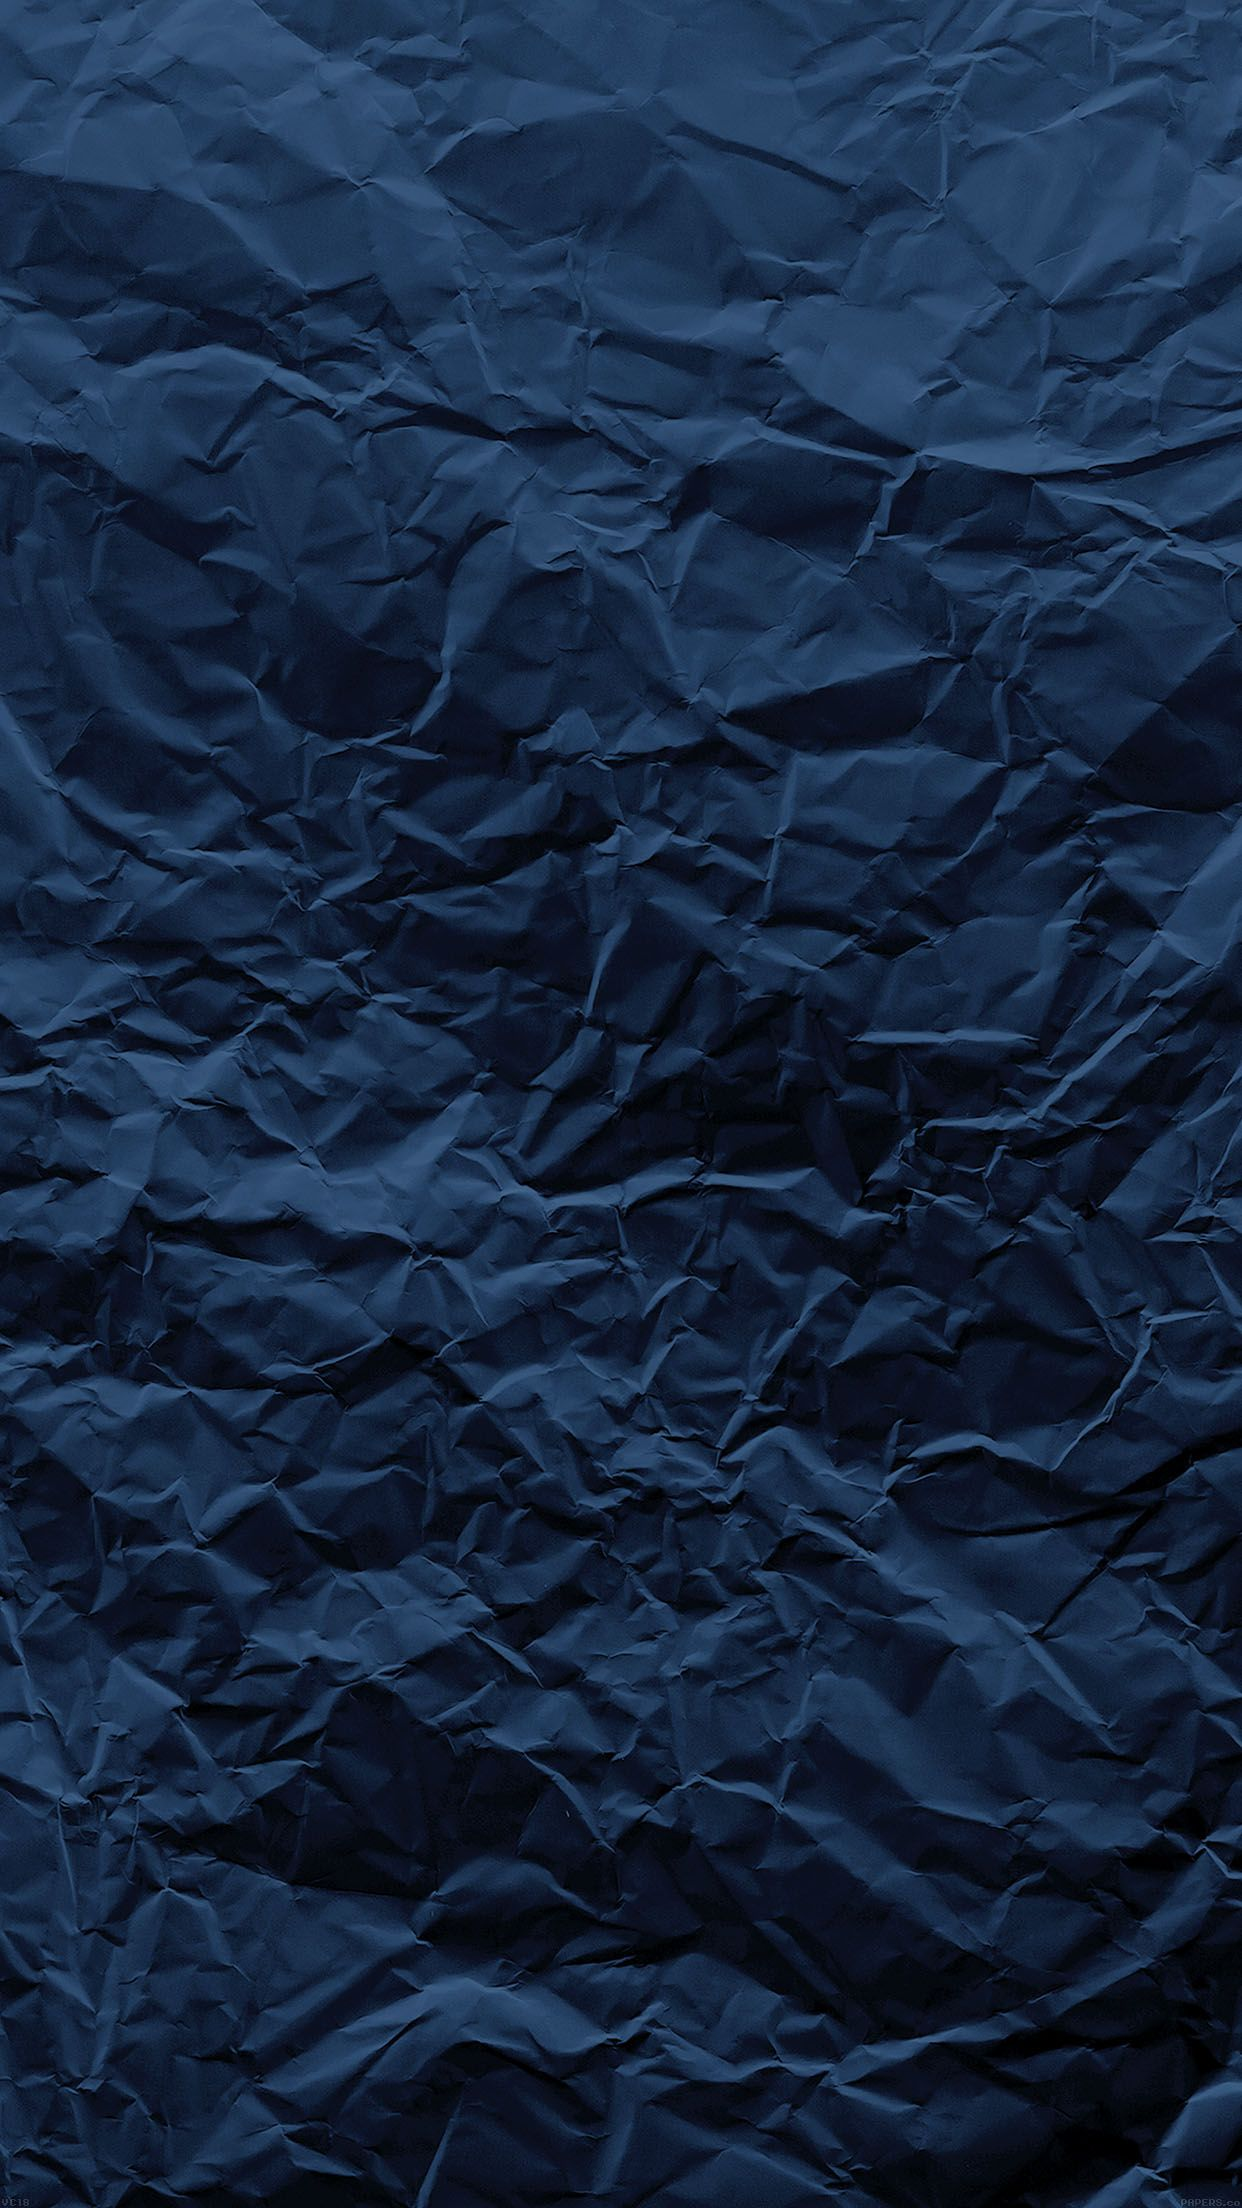 ☺iphone ios 7 wallpaper tumblr for ipad Dark blue